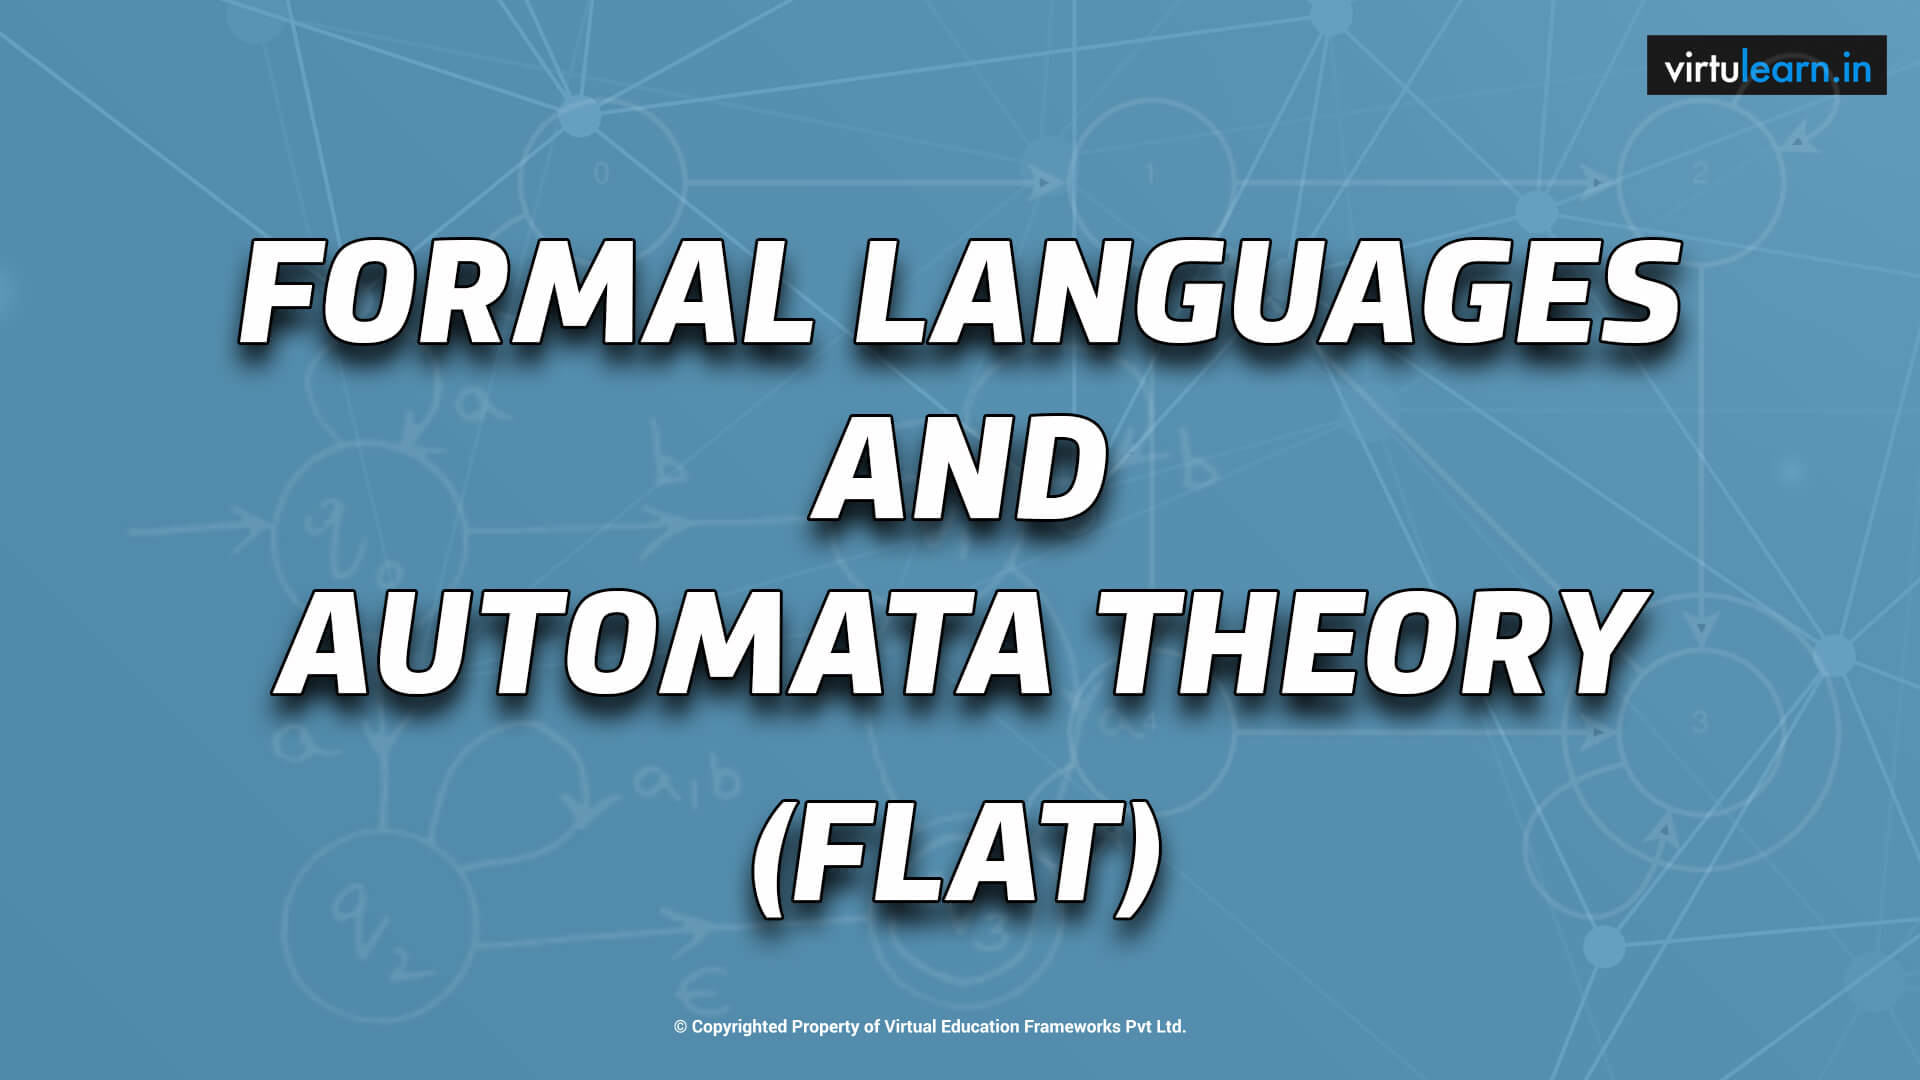 Formal Languages and Automata Theory (FLAT) online videos